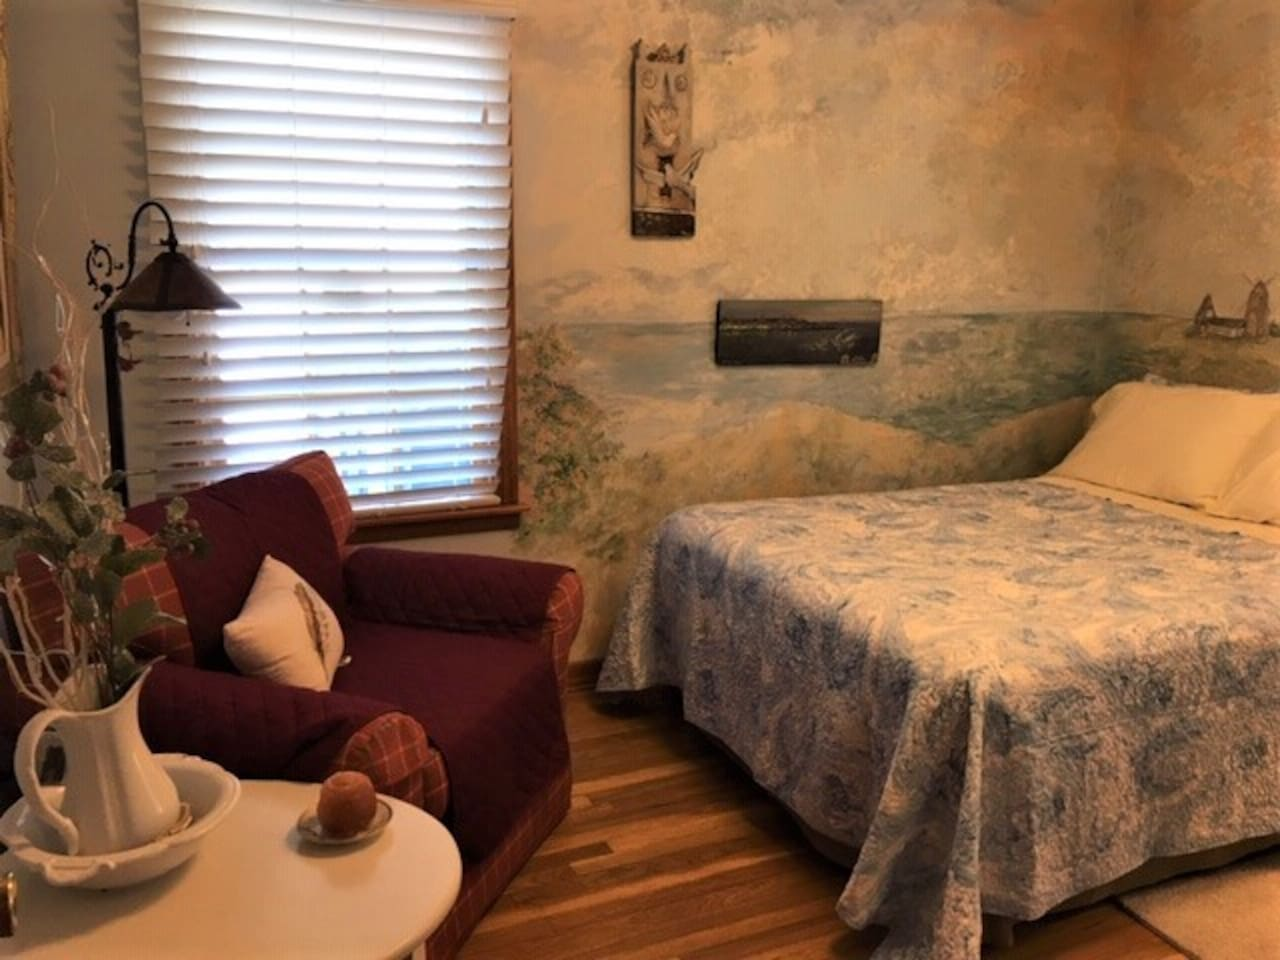 The Hideaway is a cozy room with sea shore decor and a view of Mt. Greylock out the window. A comfy double bed to one side, a grand chair in the corner for reading and a desk for your use. The Hideaway is one step from a shared roomy bathroom.